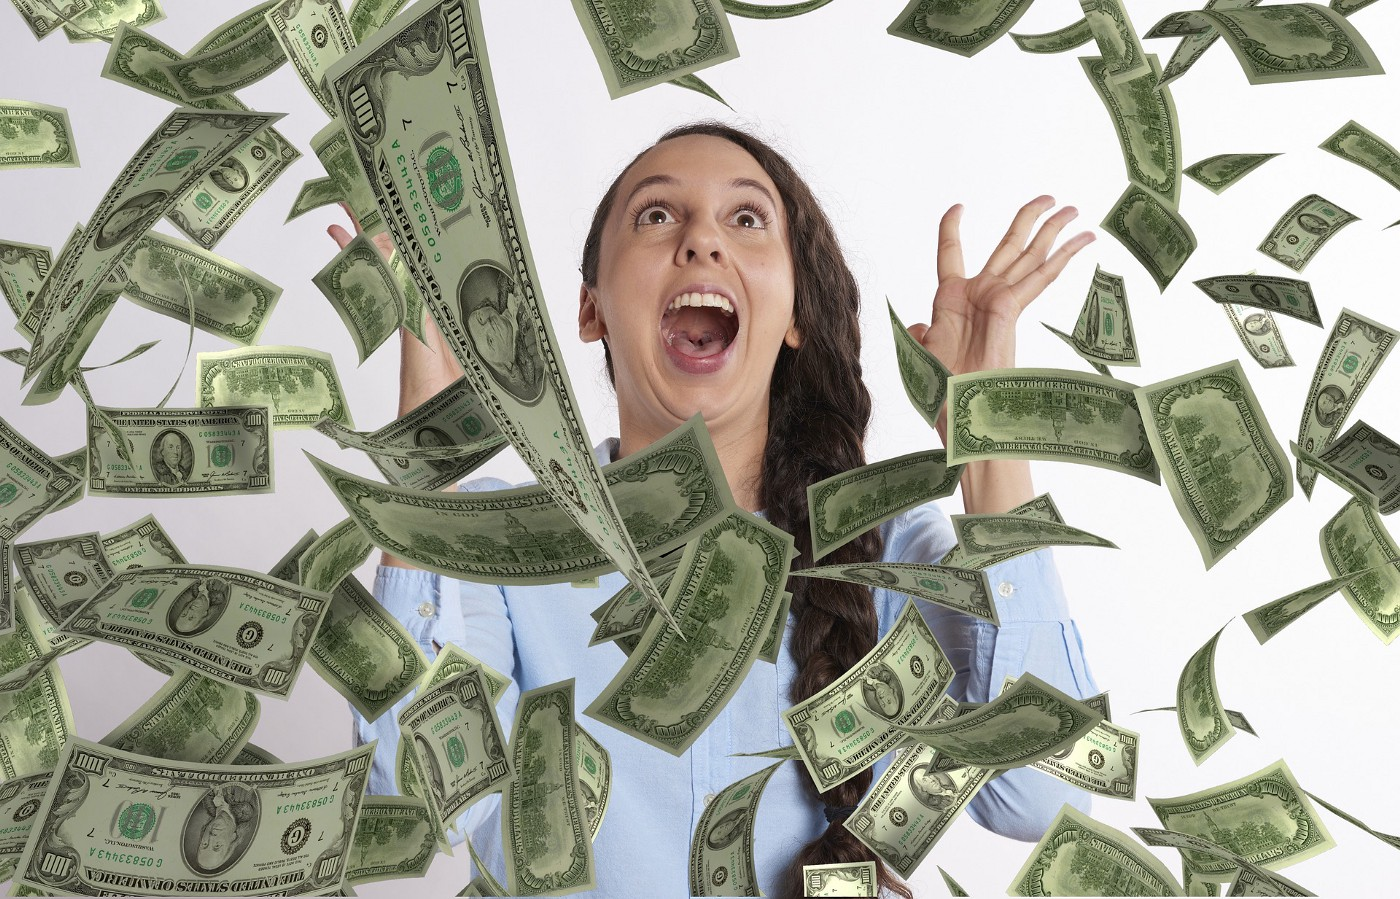 Image of excited woman yelling excitedly as money falls out of the sky